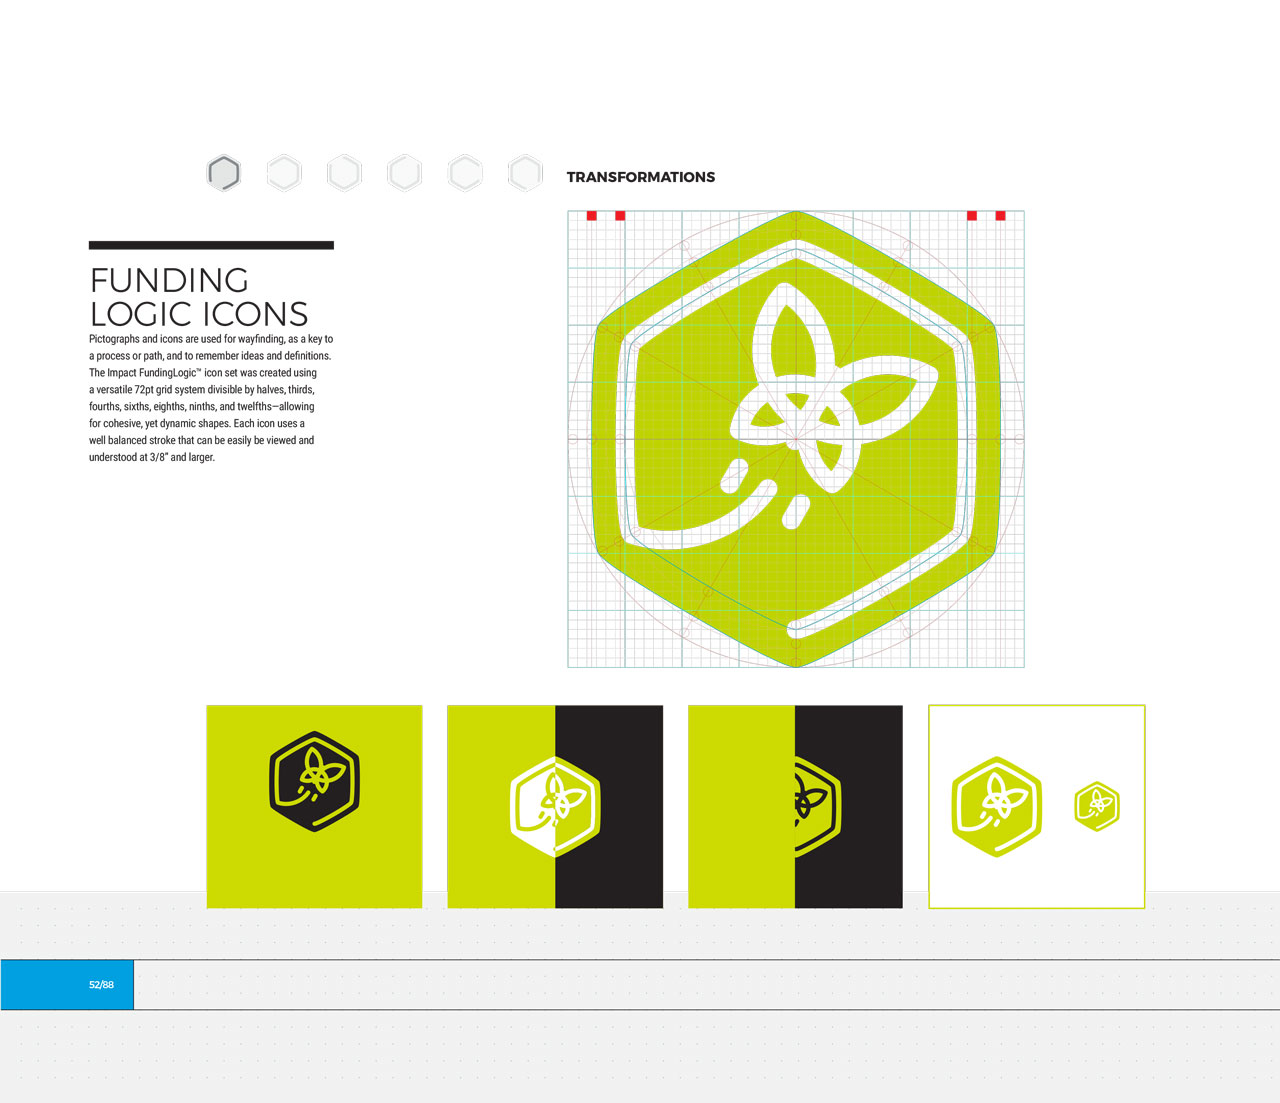 Single page from brand identity manual displaying green, hexagonal transformation icon